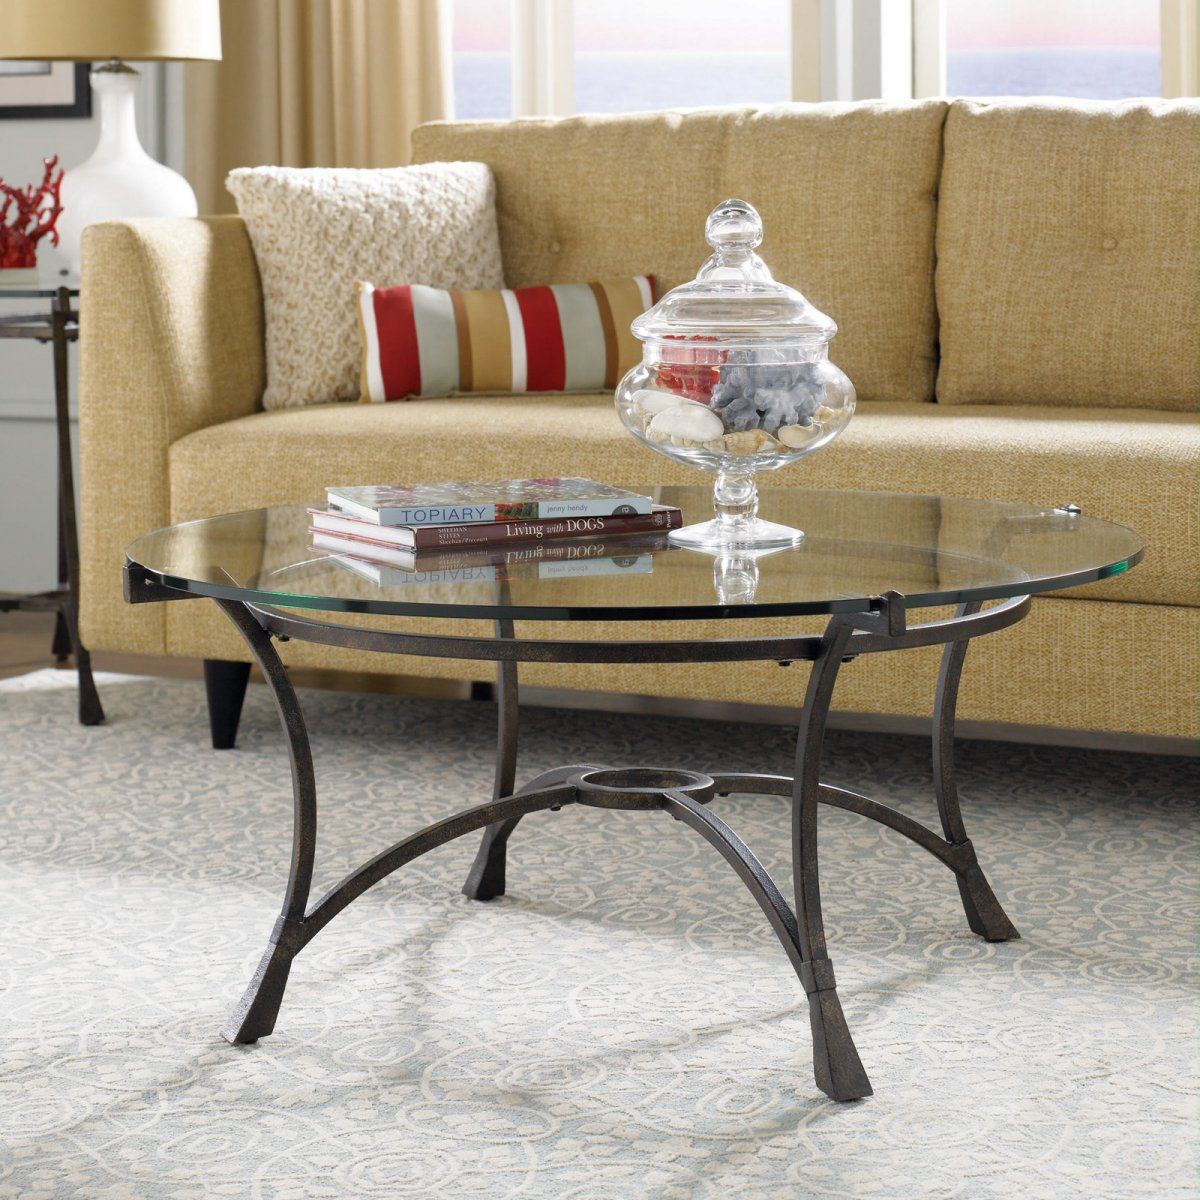 glass coffee tables that bring transparency your living room table with metal legs daring piece feels both elegant and industrial top end root wood furniture rustic twig disney